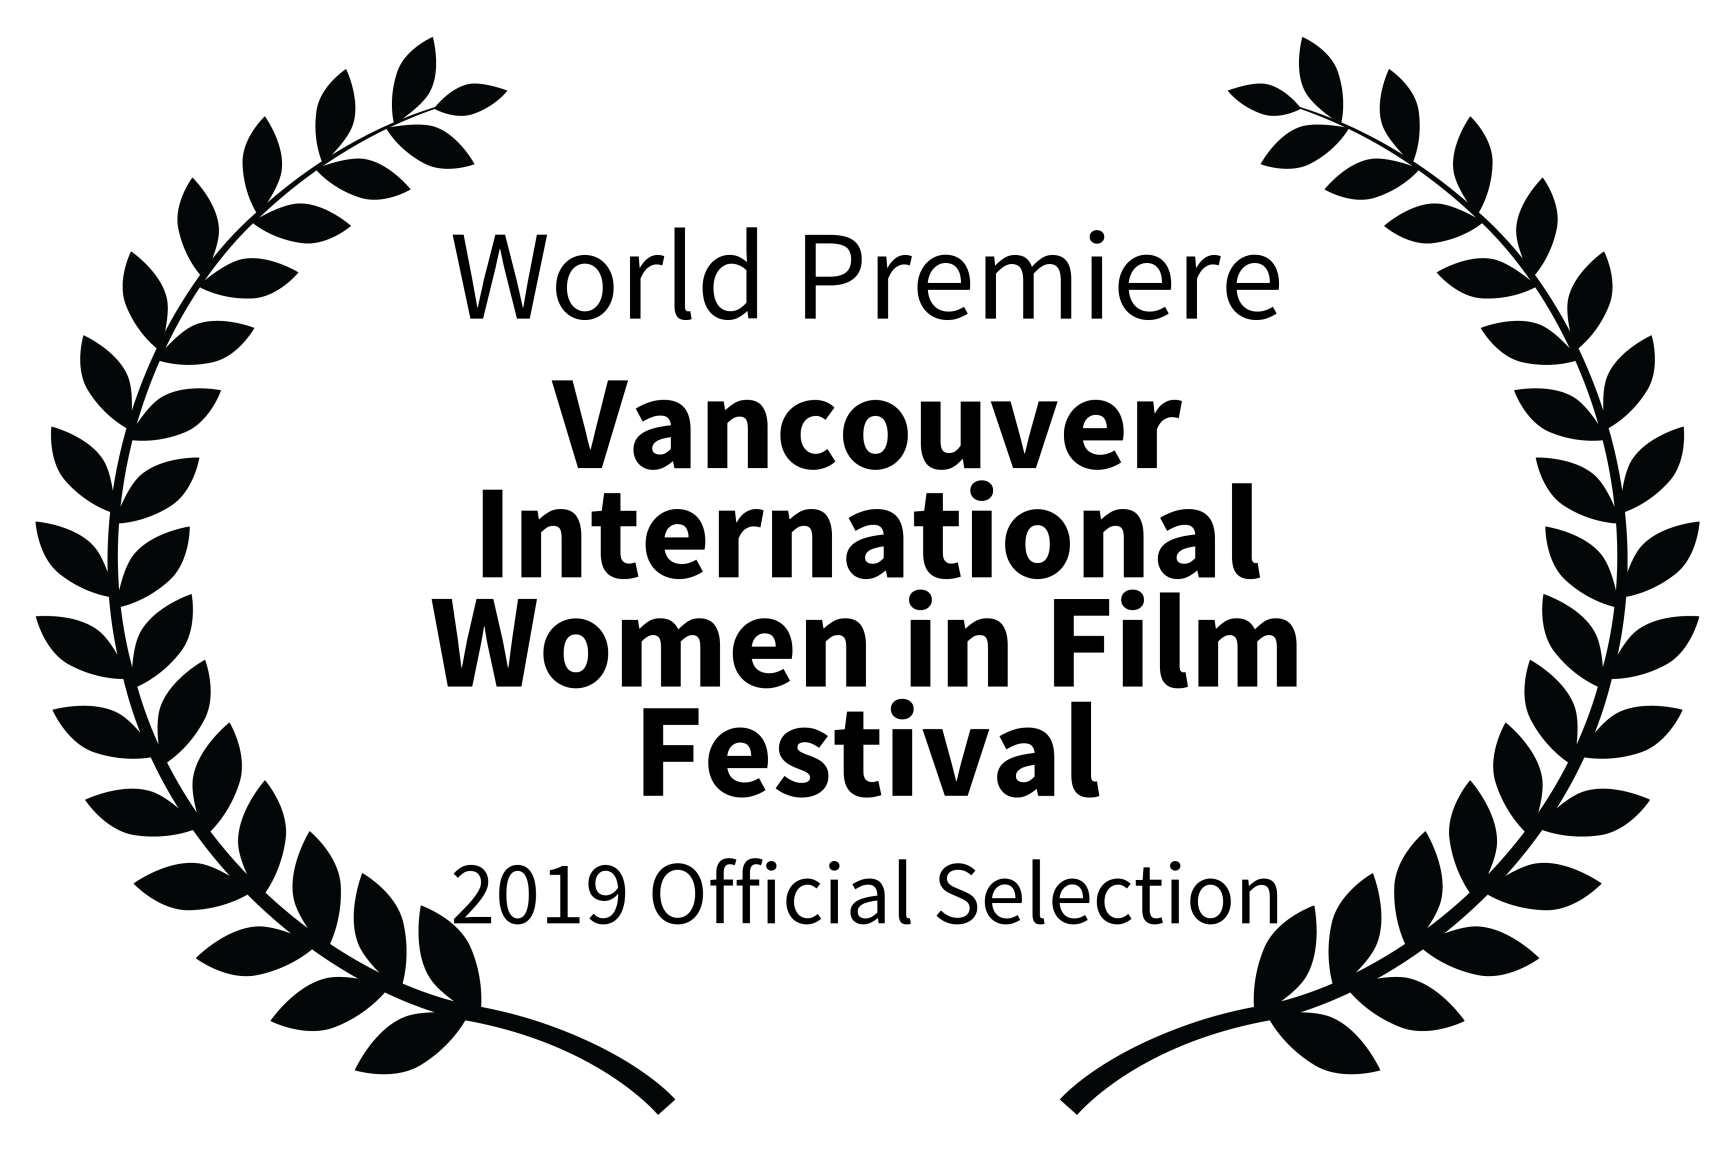 https://tinathemovie.com/wp-content/uploads/2019/02/World-Premiere-Vancouver-International-Women-in-Film-Festival-2019-Official-Selection.png